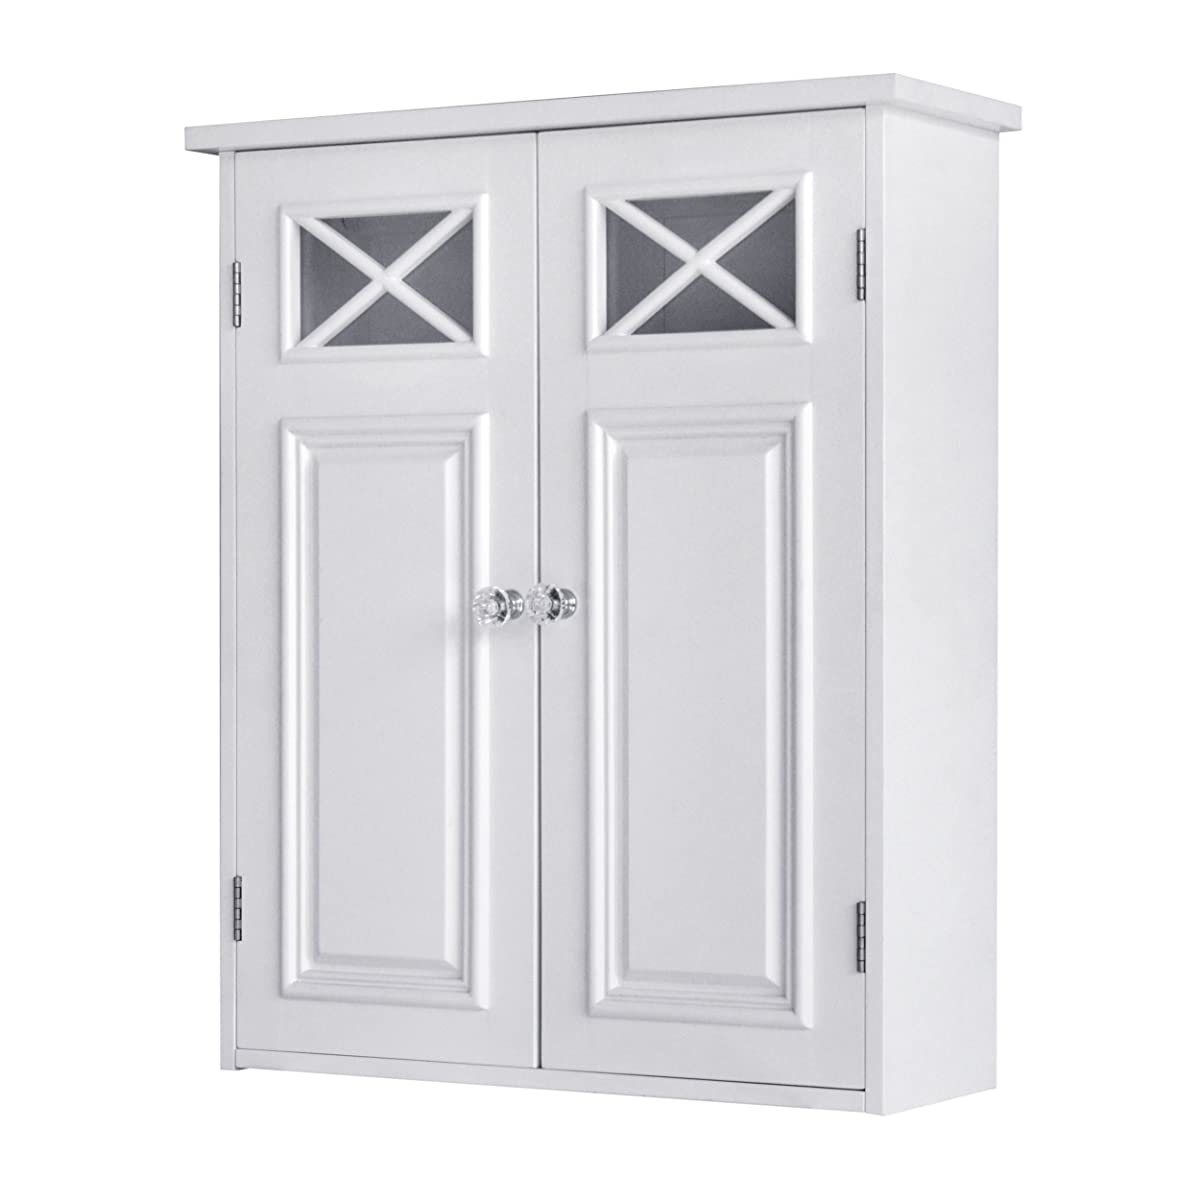 Elegant Home Fashions Dawson Collection Shelved Wall Cabinet, White